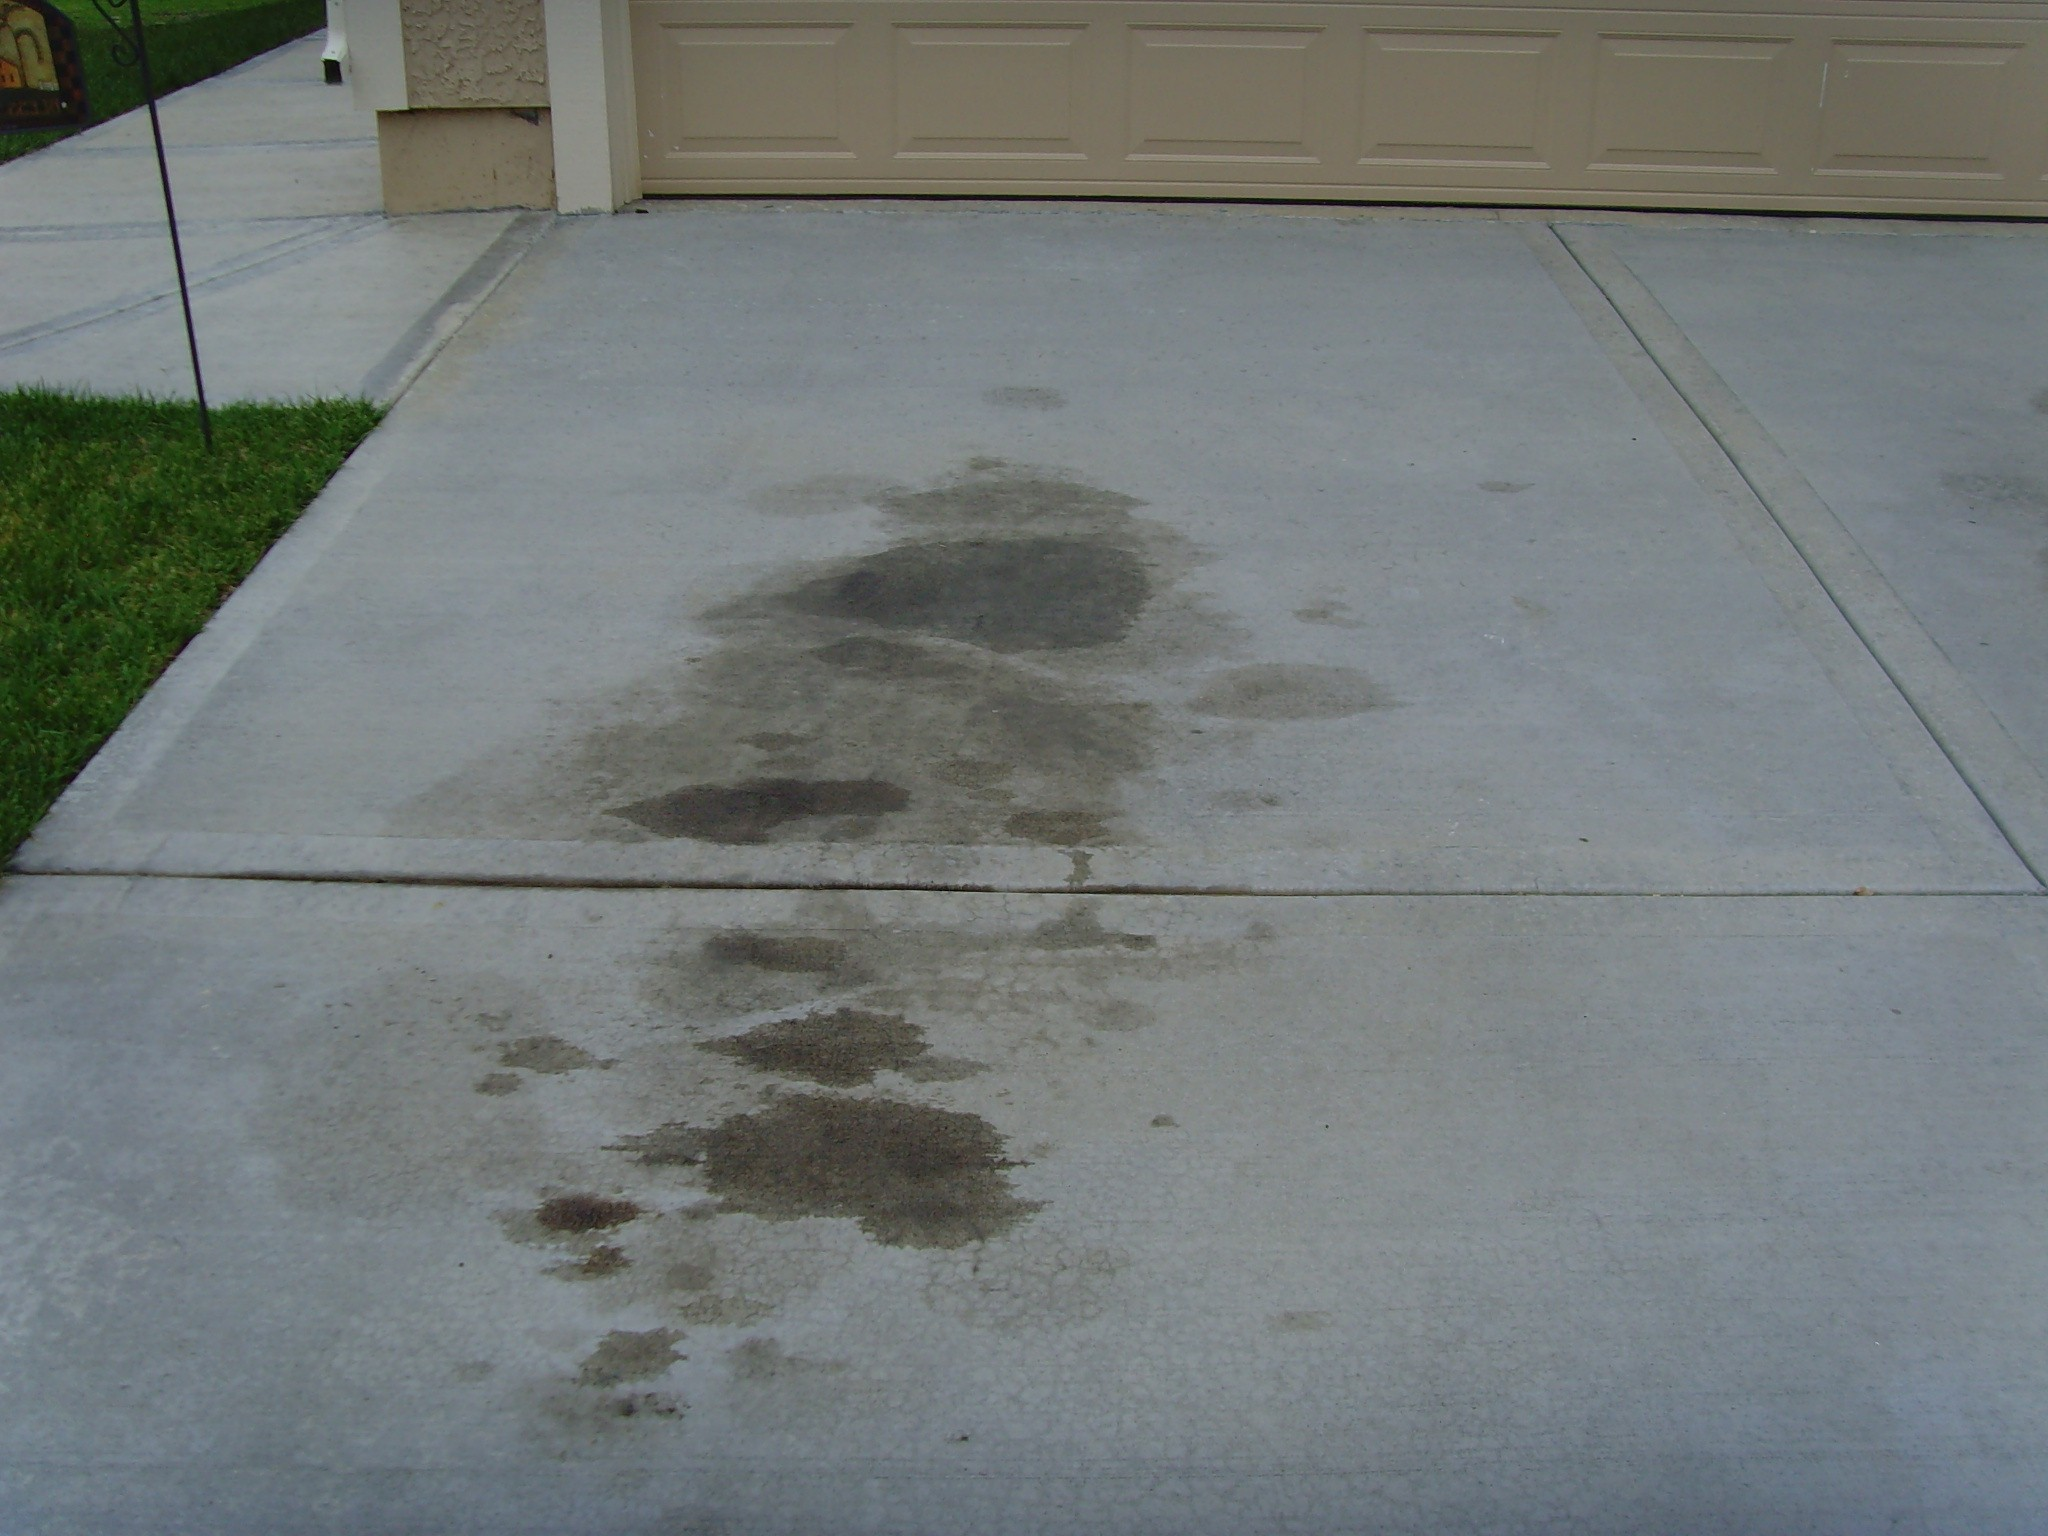 How to remove grease stains from concrete apps directories for Clean oil from concrete